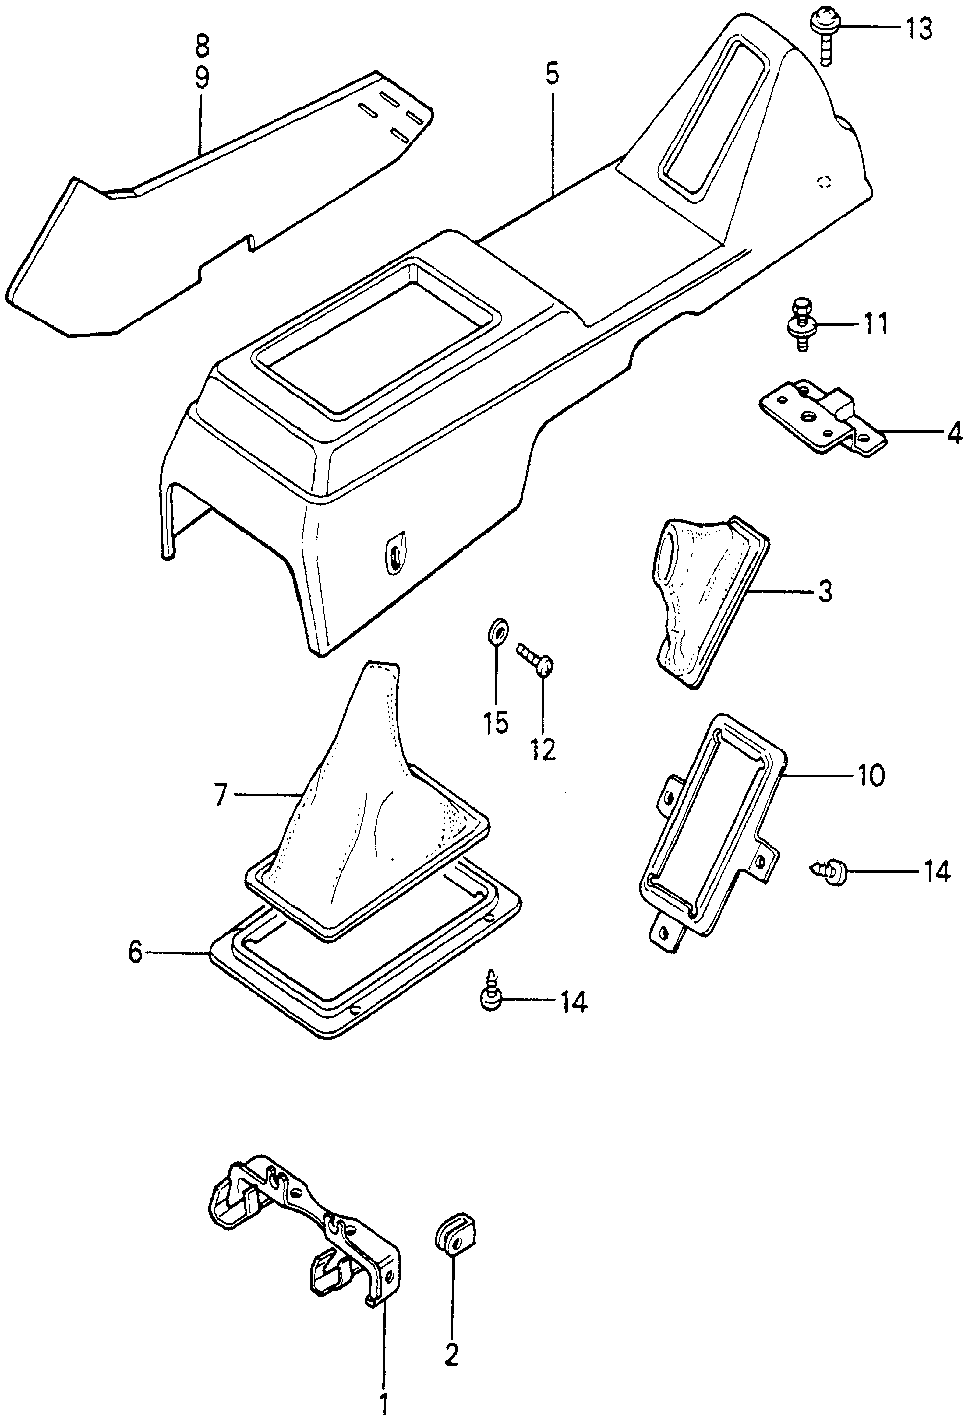 77704-692-000 - PLATE, BOOT SETTING